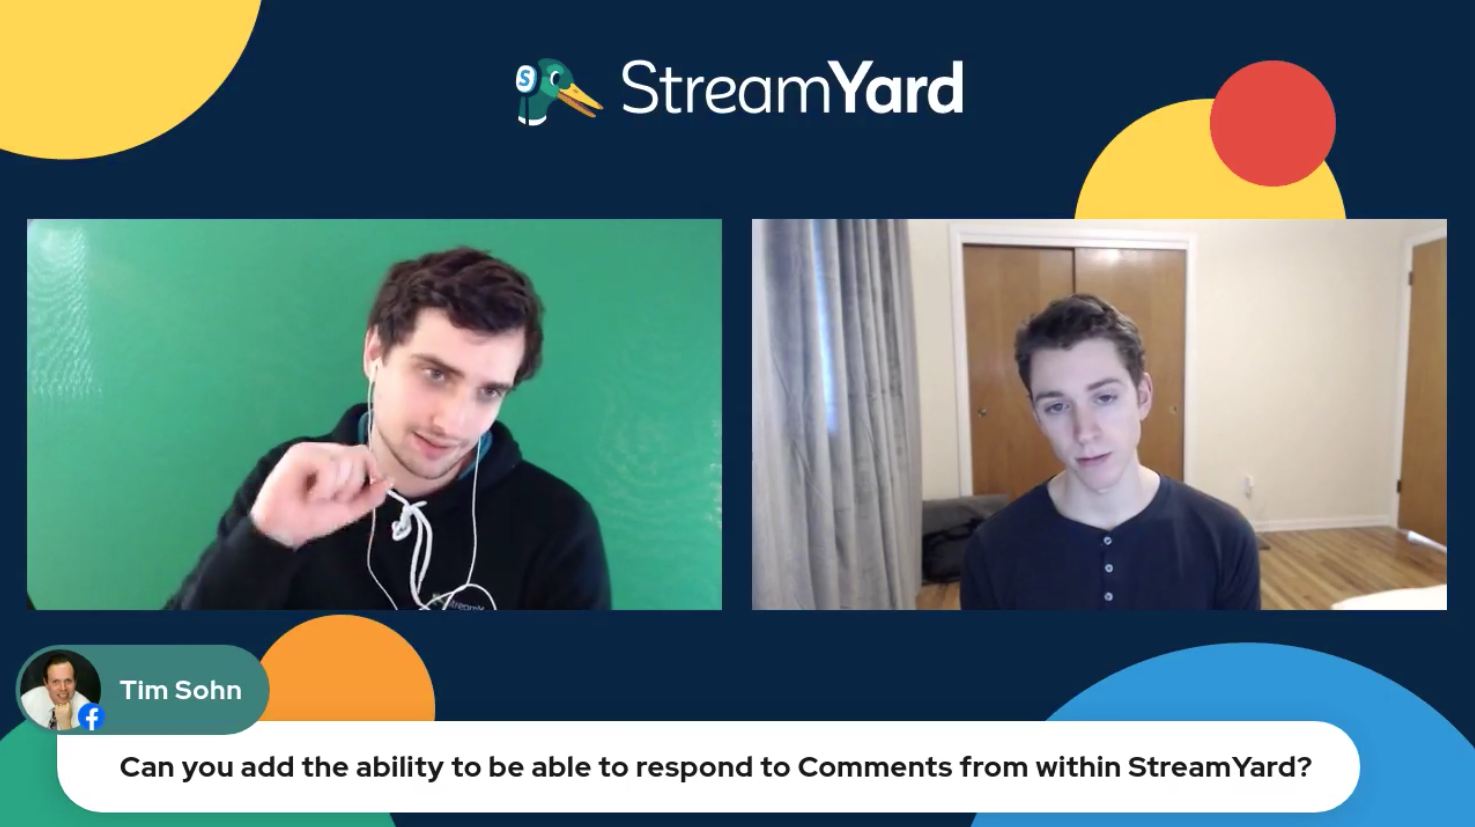 8 Can You Add Ability To Reply To Comments - Streamyard Town Hall 116